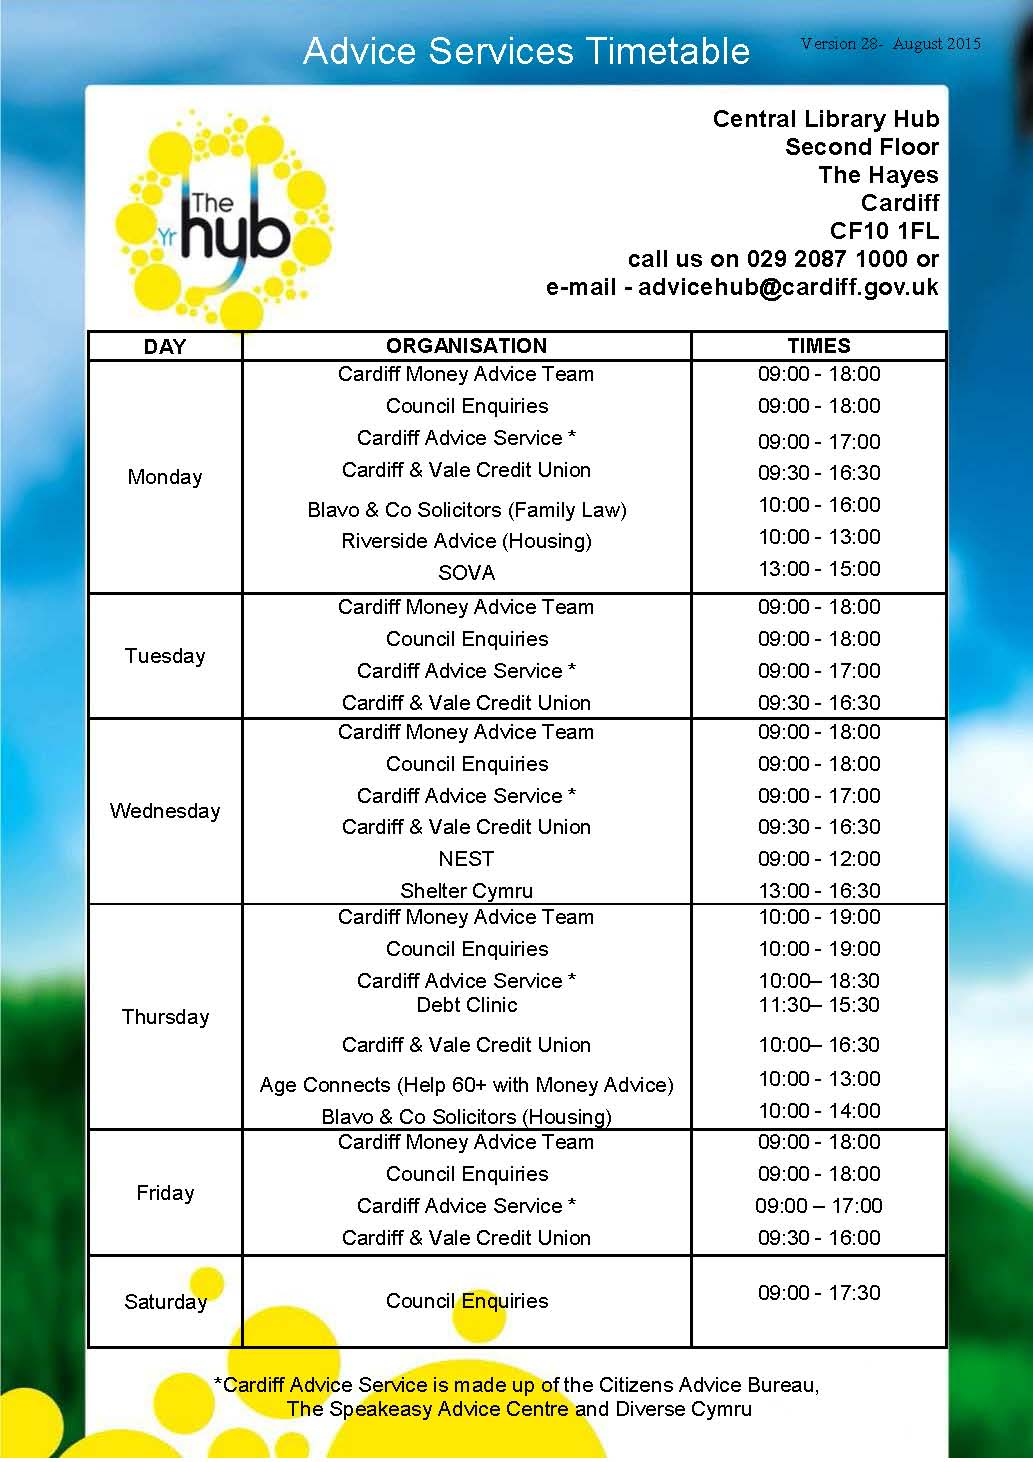 Central Library Hub Timetable